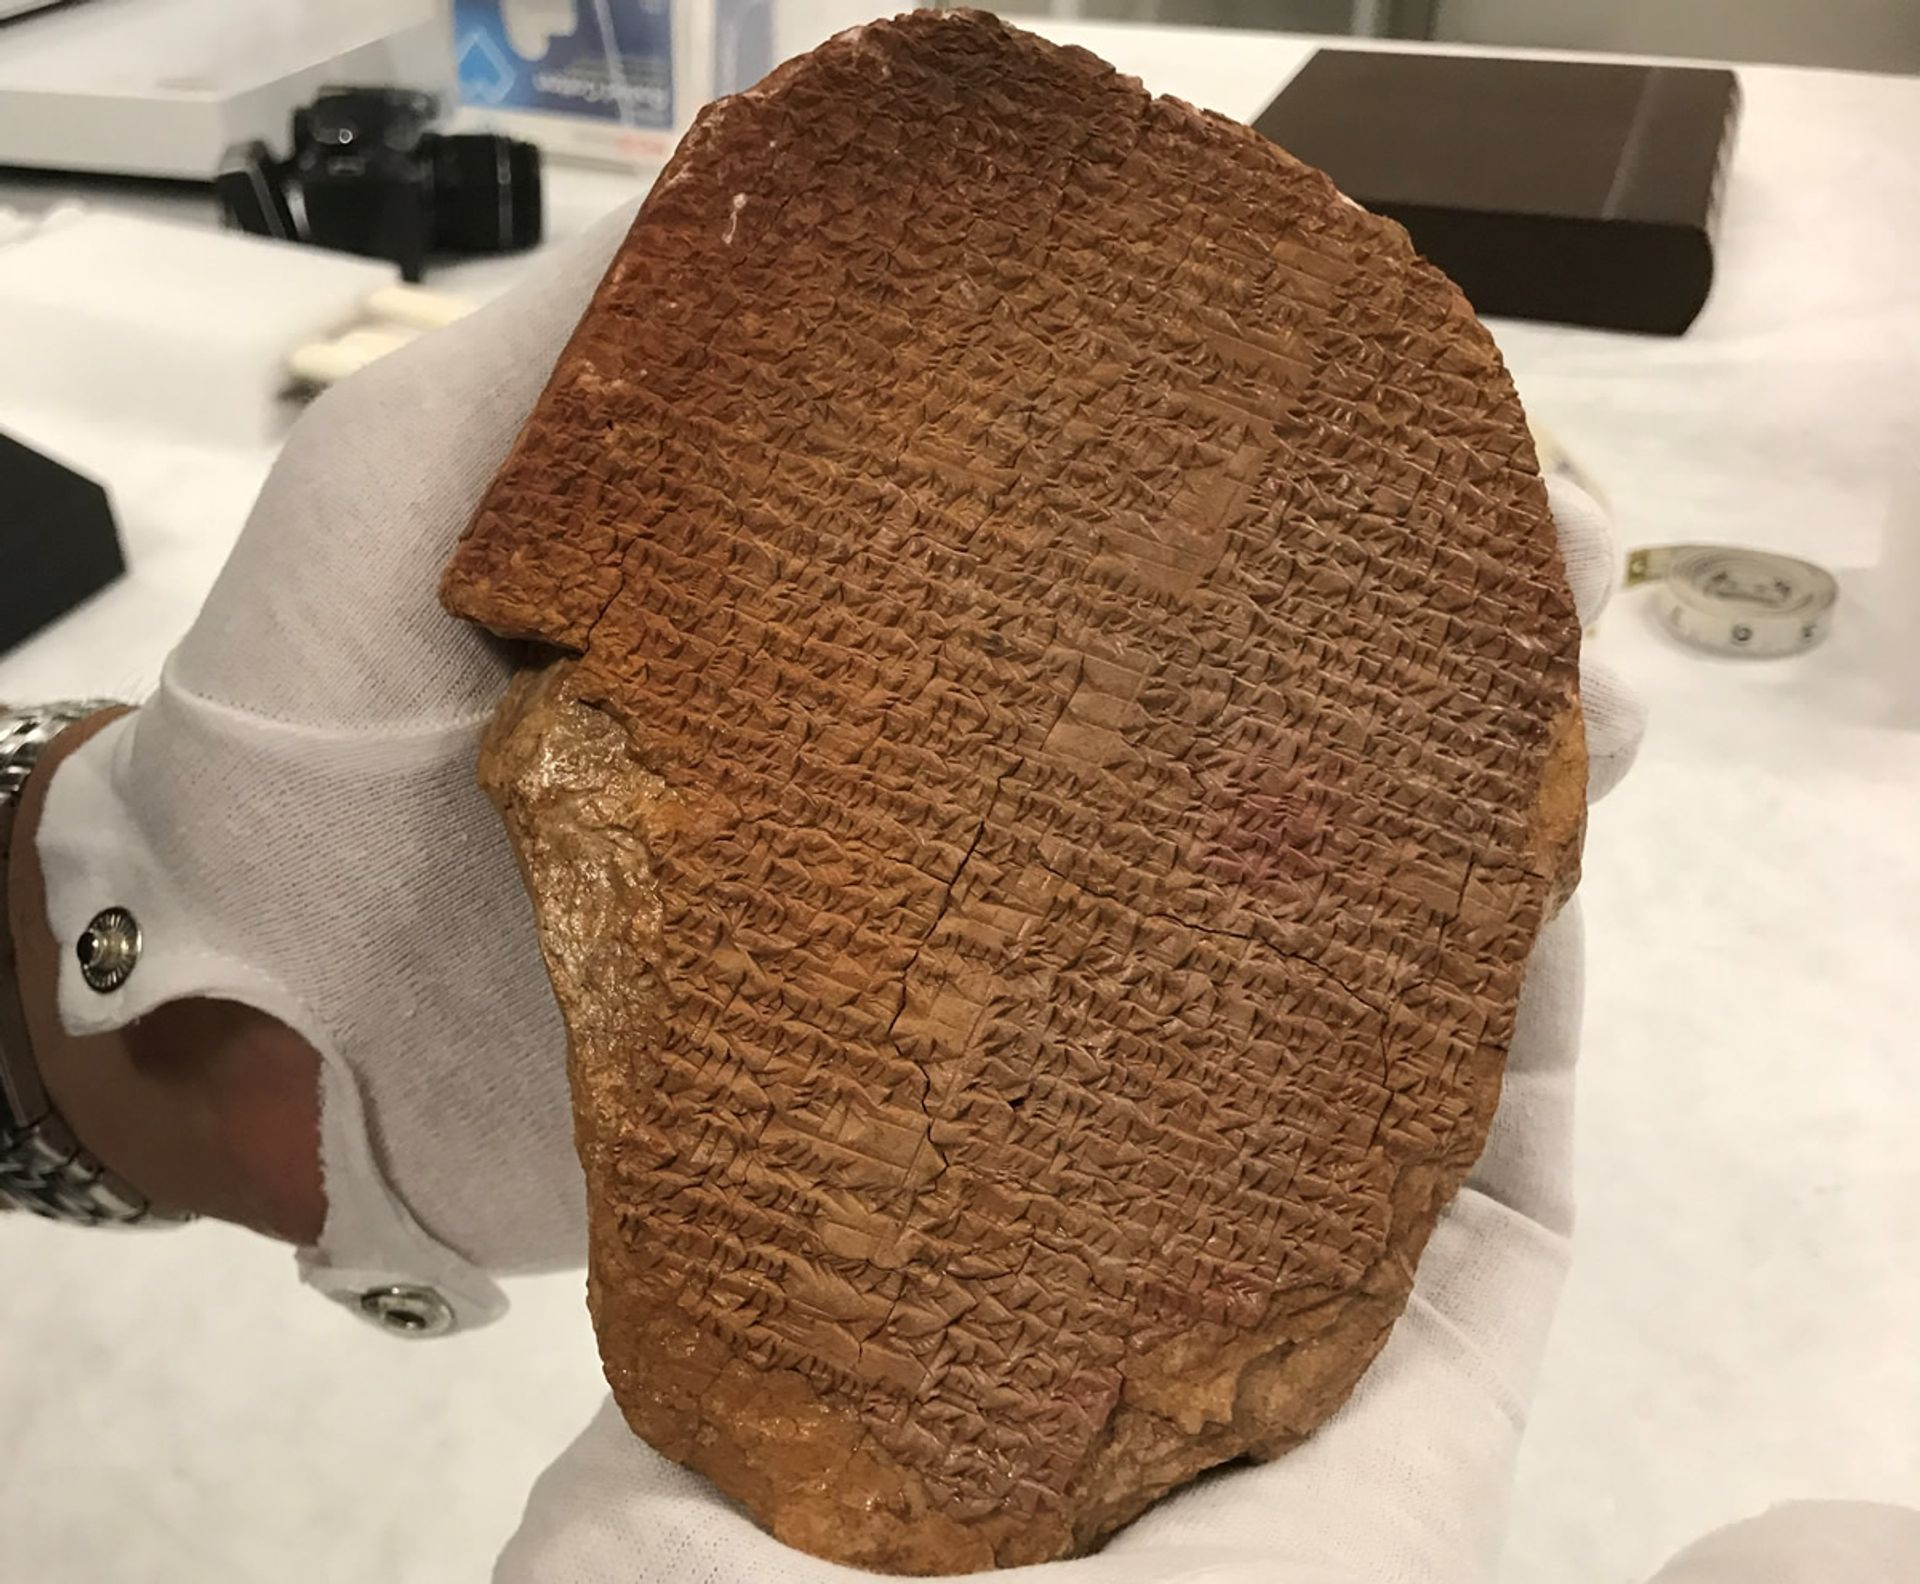 ICE's Homeland Security Investigations (HSI) New York, seized a rare cuneiform tablet bearing a portion of the epic of Gilgamesh, a Sumerian epic poem considered one the world's oldest works of literature, from the Museum of the Bible last year Photo: ICE-HSI